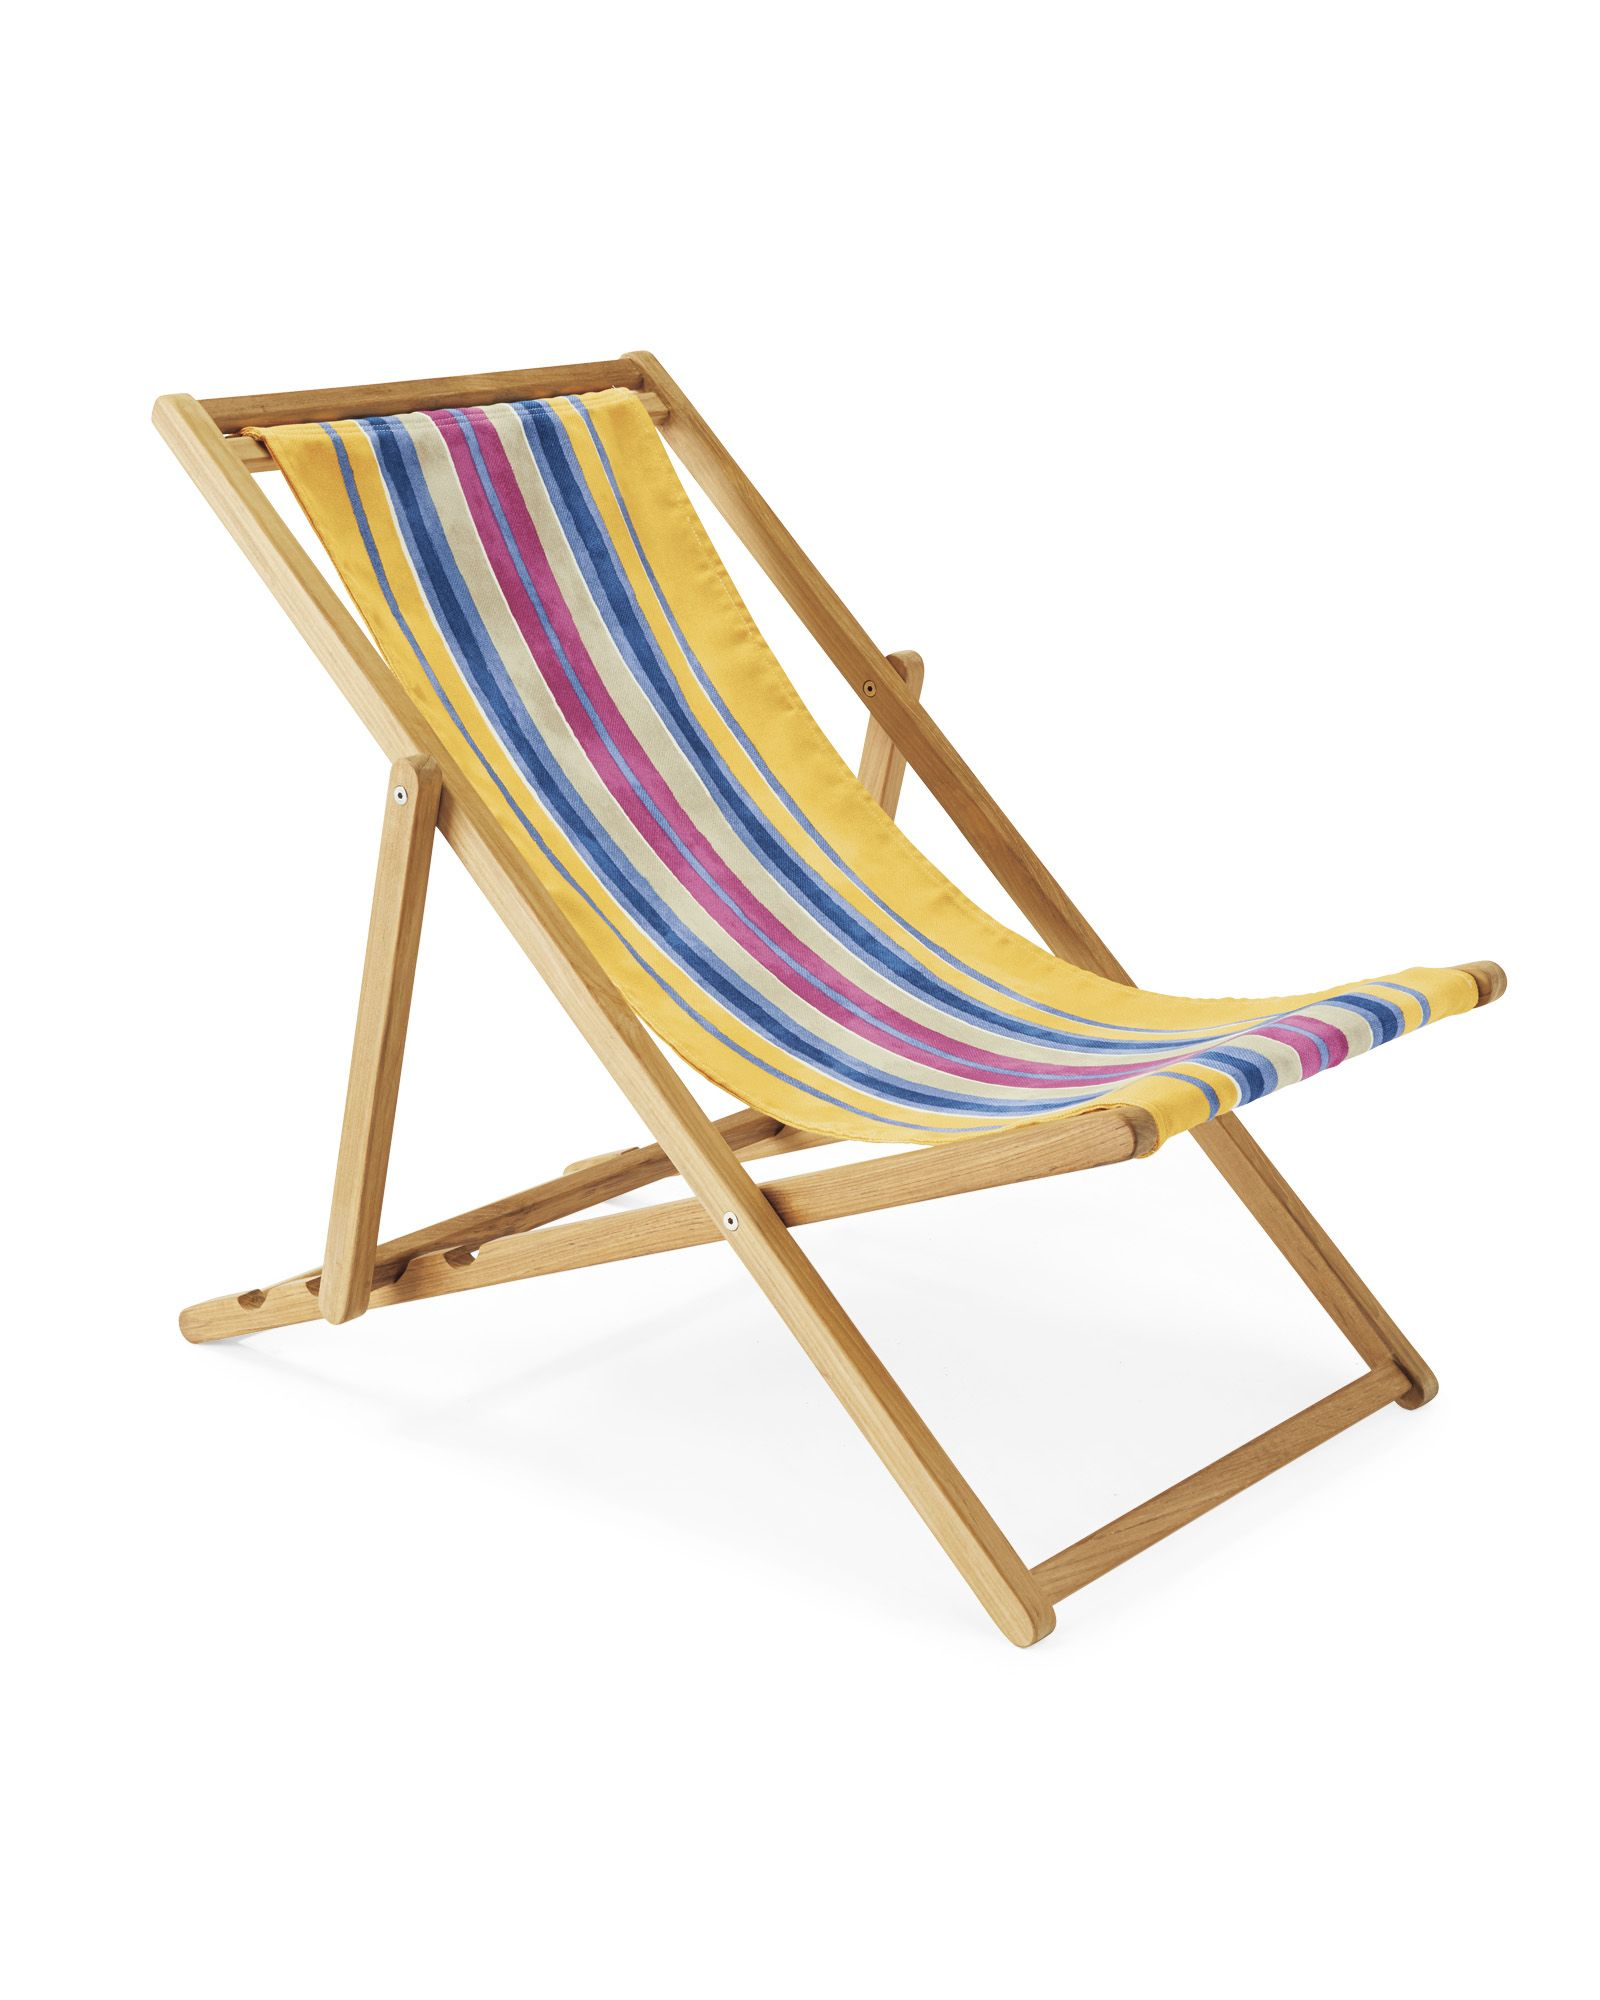 Teak Sling Chair Sling Chair Chair Small Recliner Chairs